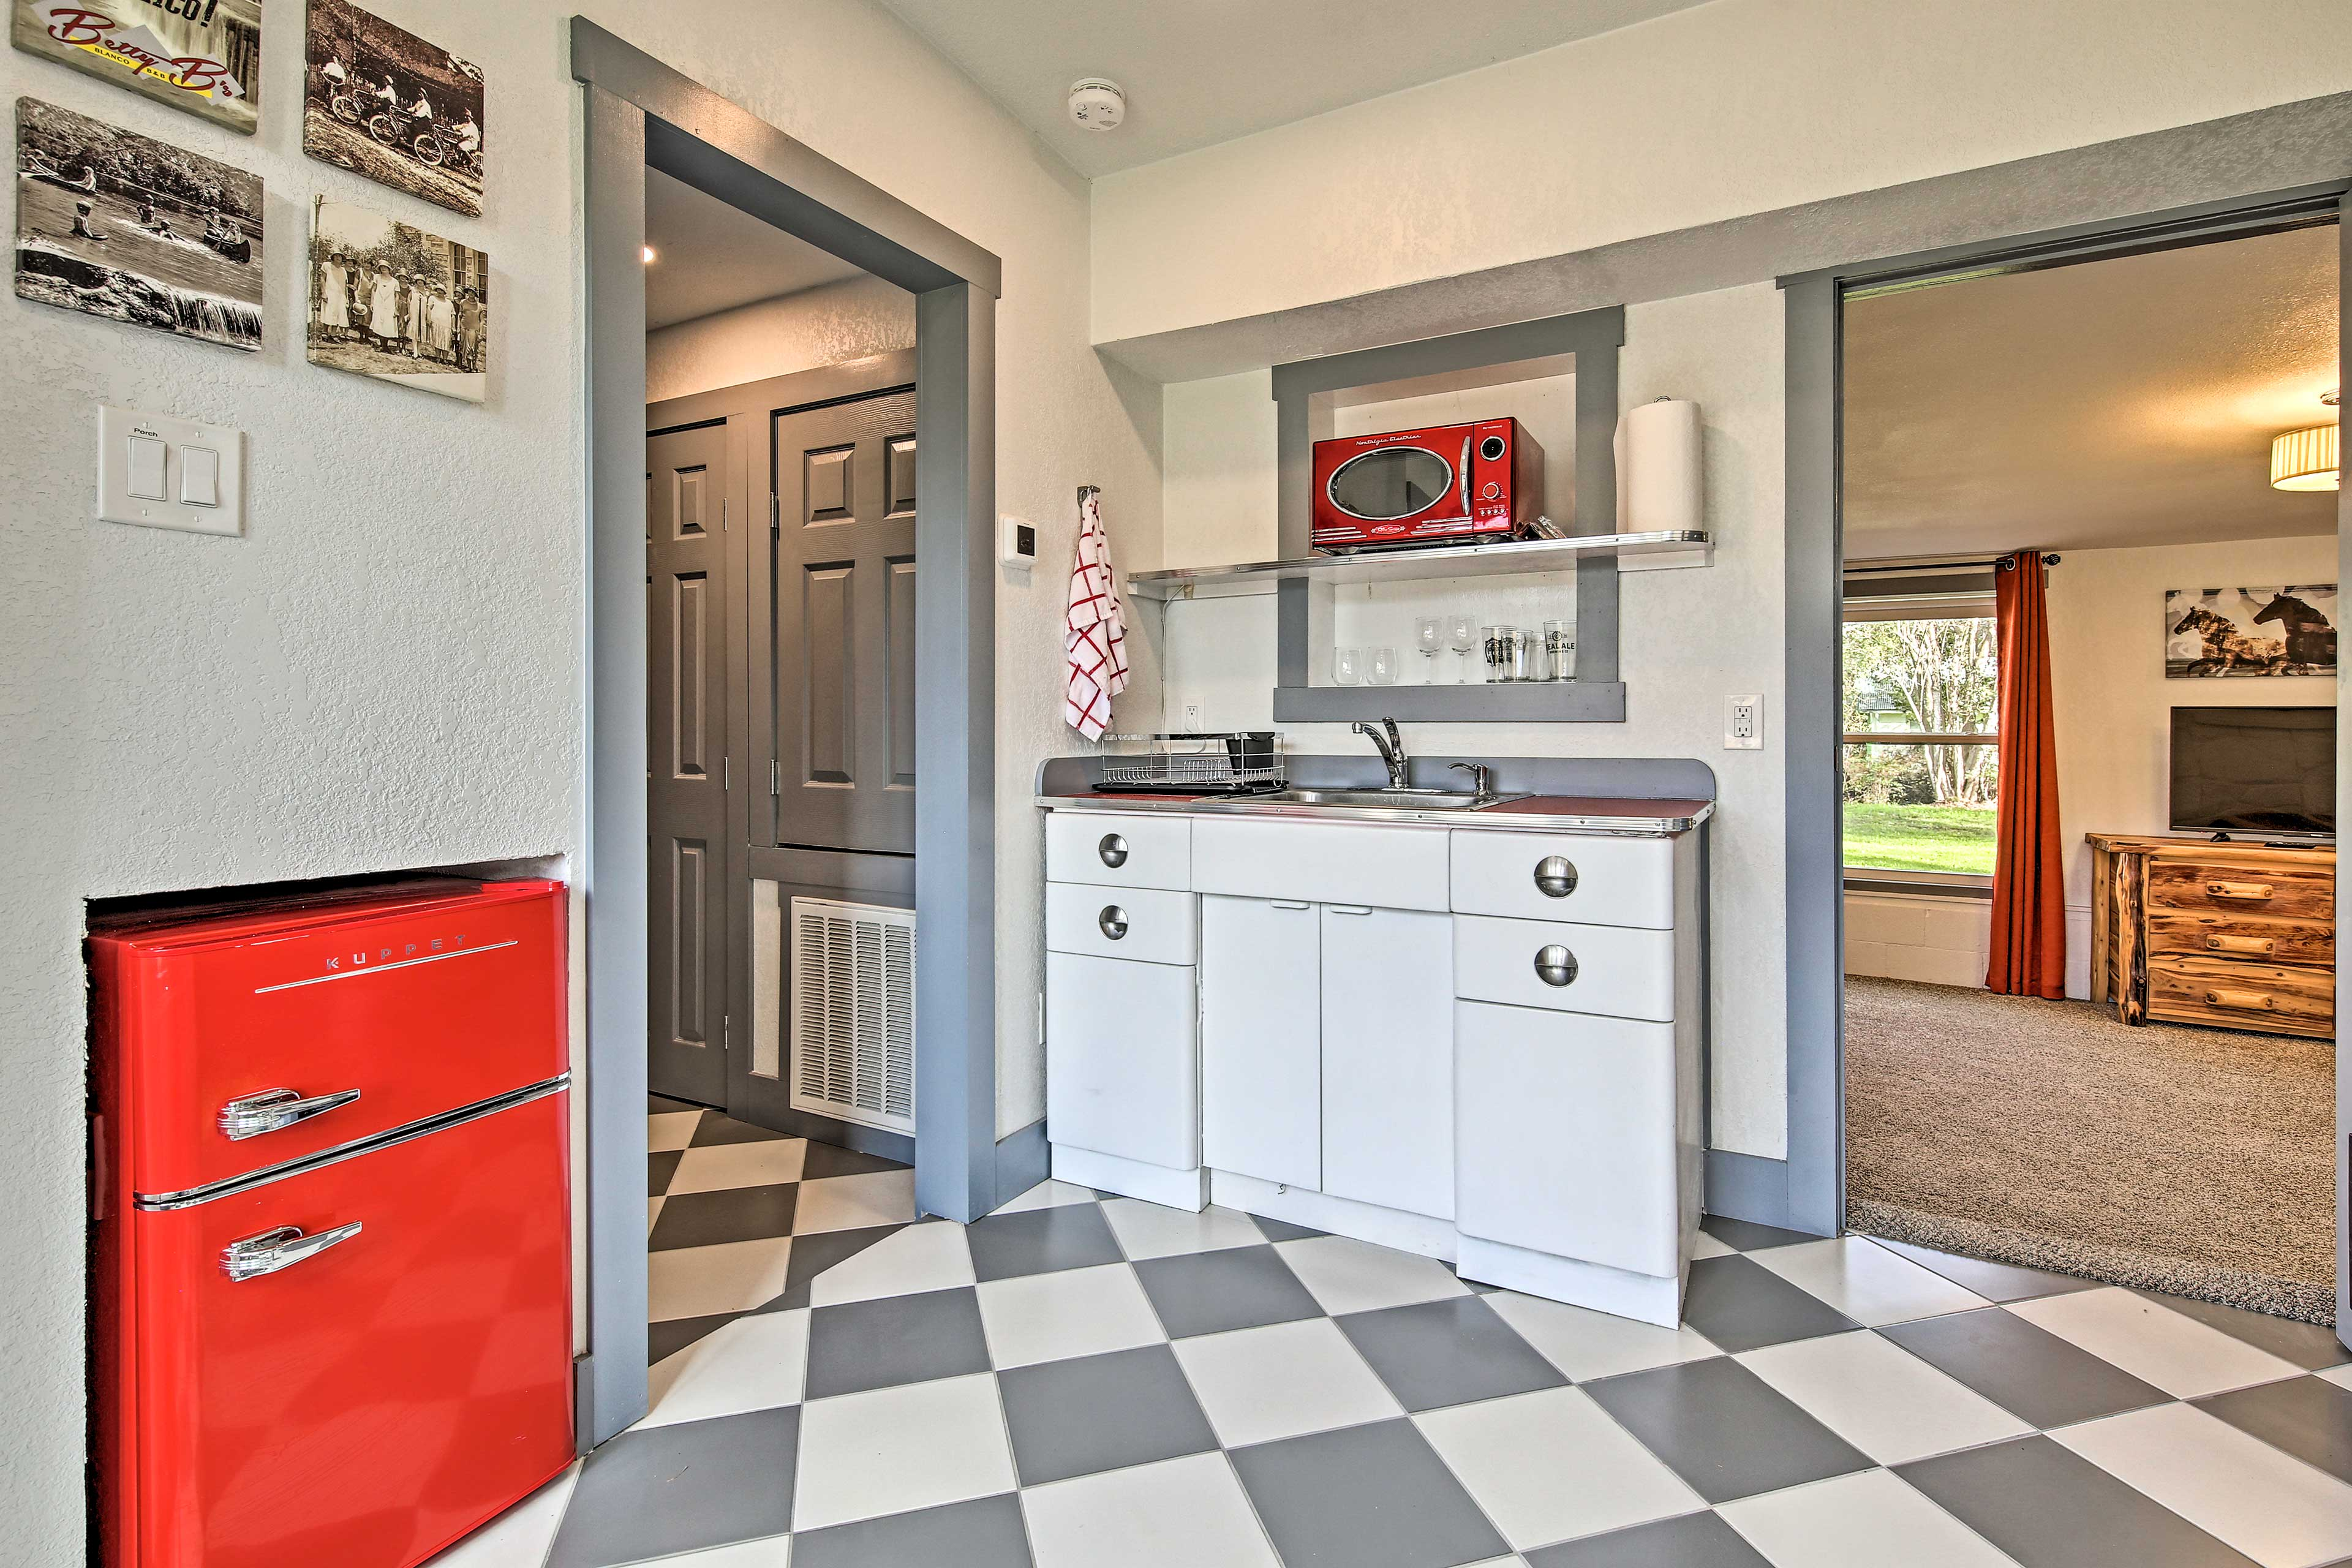 Make small meals in this well-equipped kitchen.